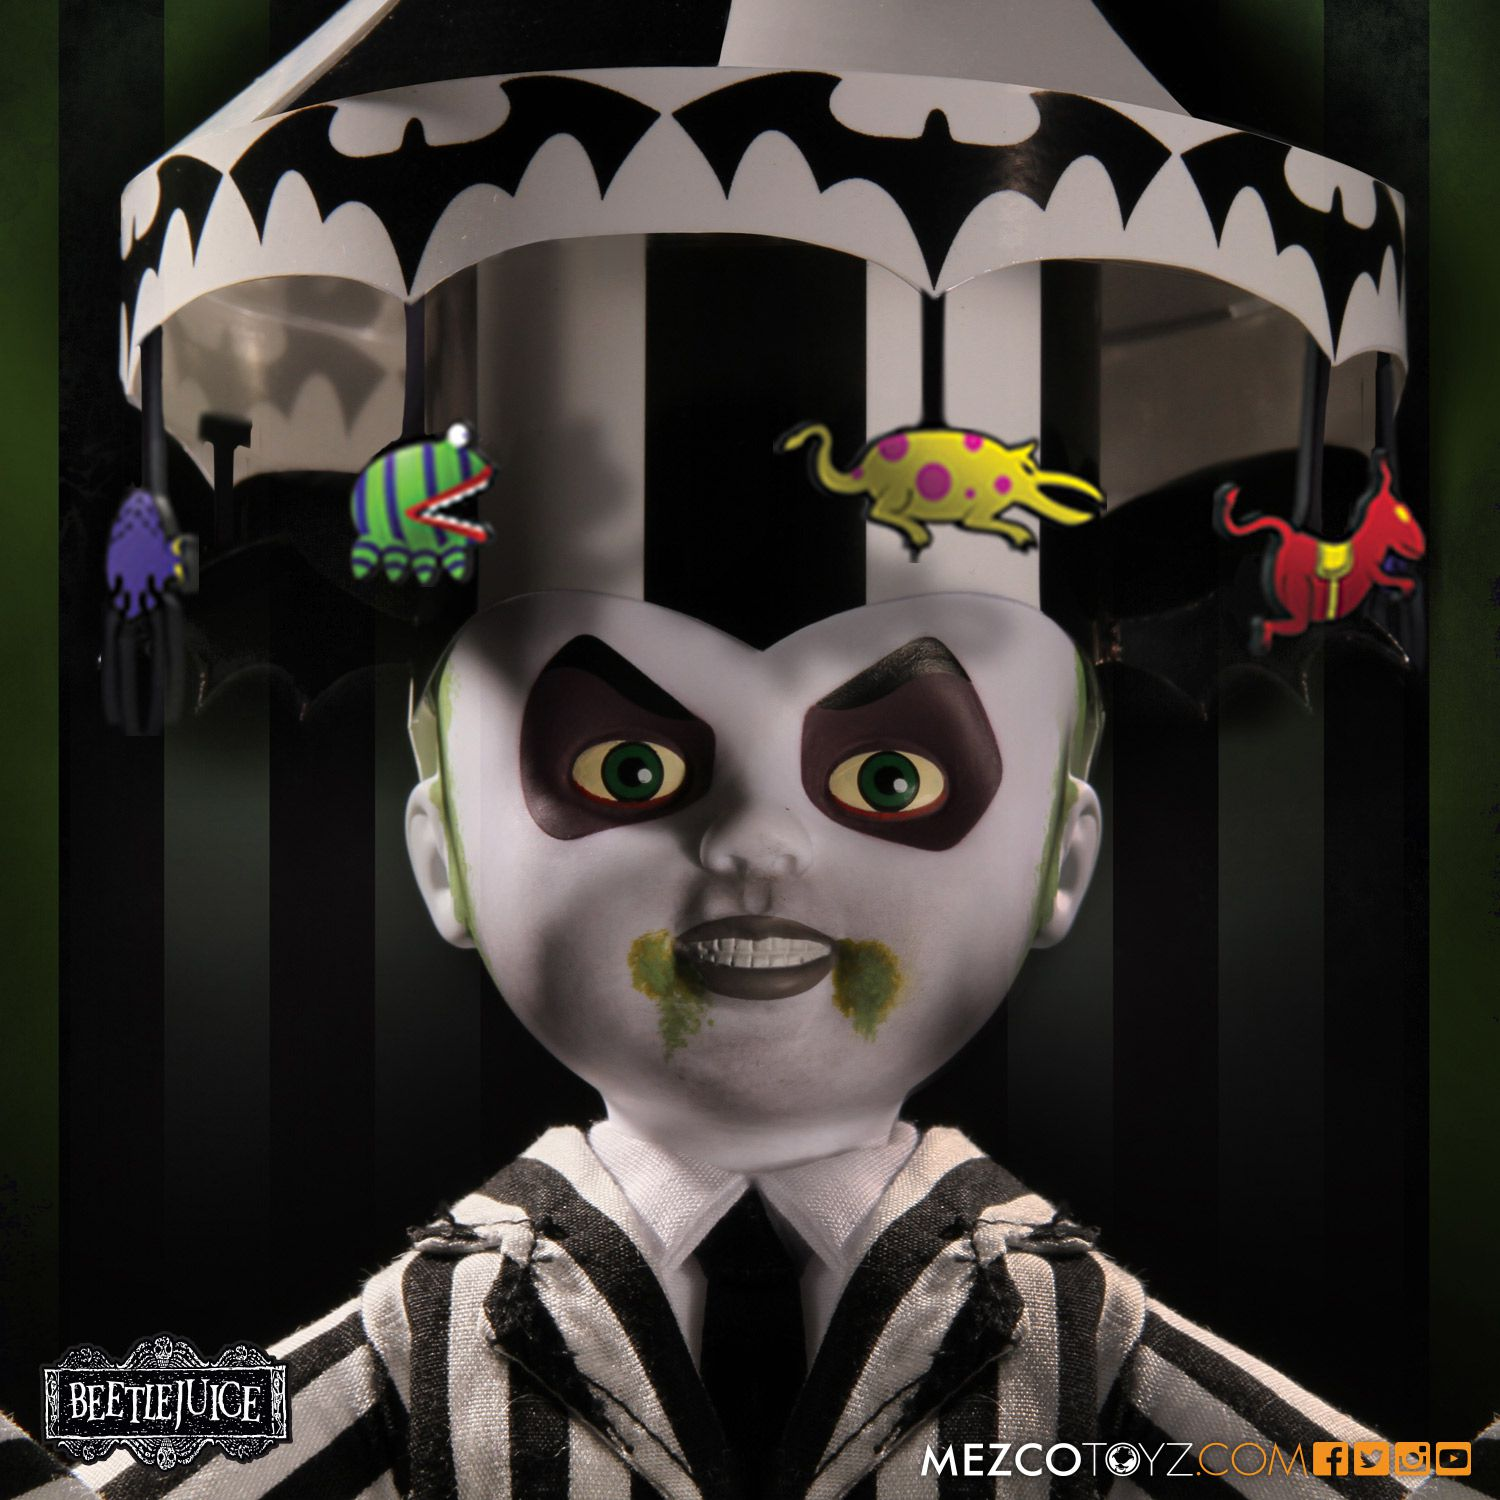 Showtime Beetlejuice - Living Dead Dolls -